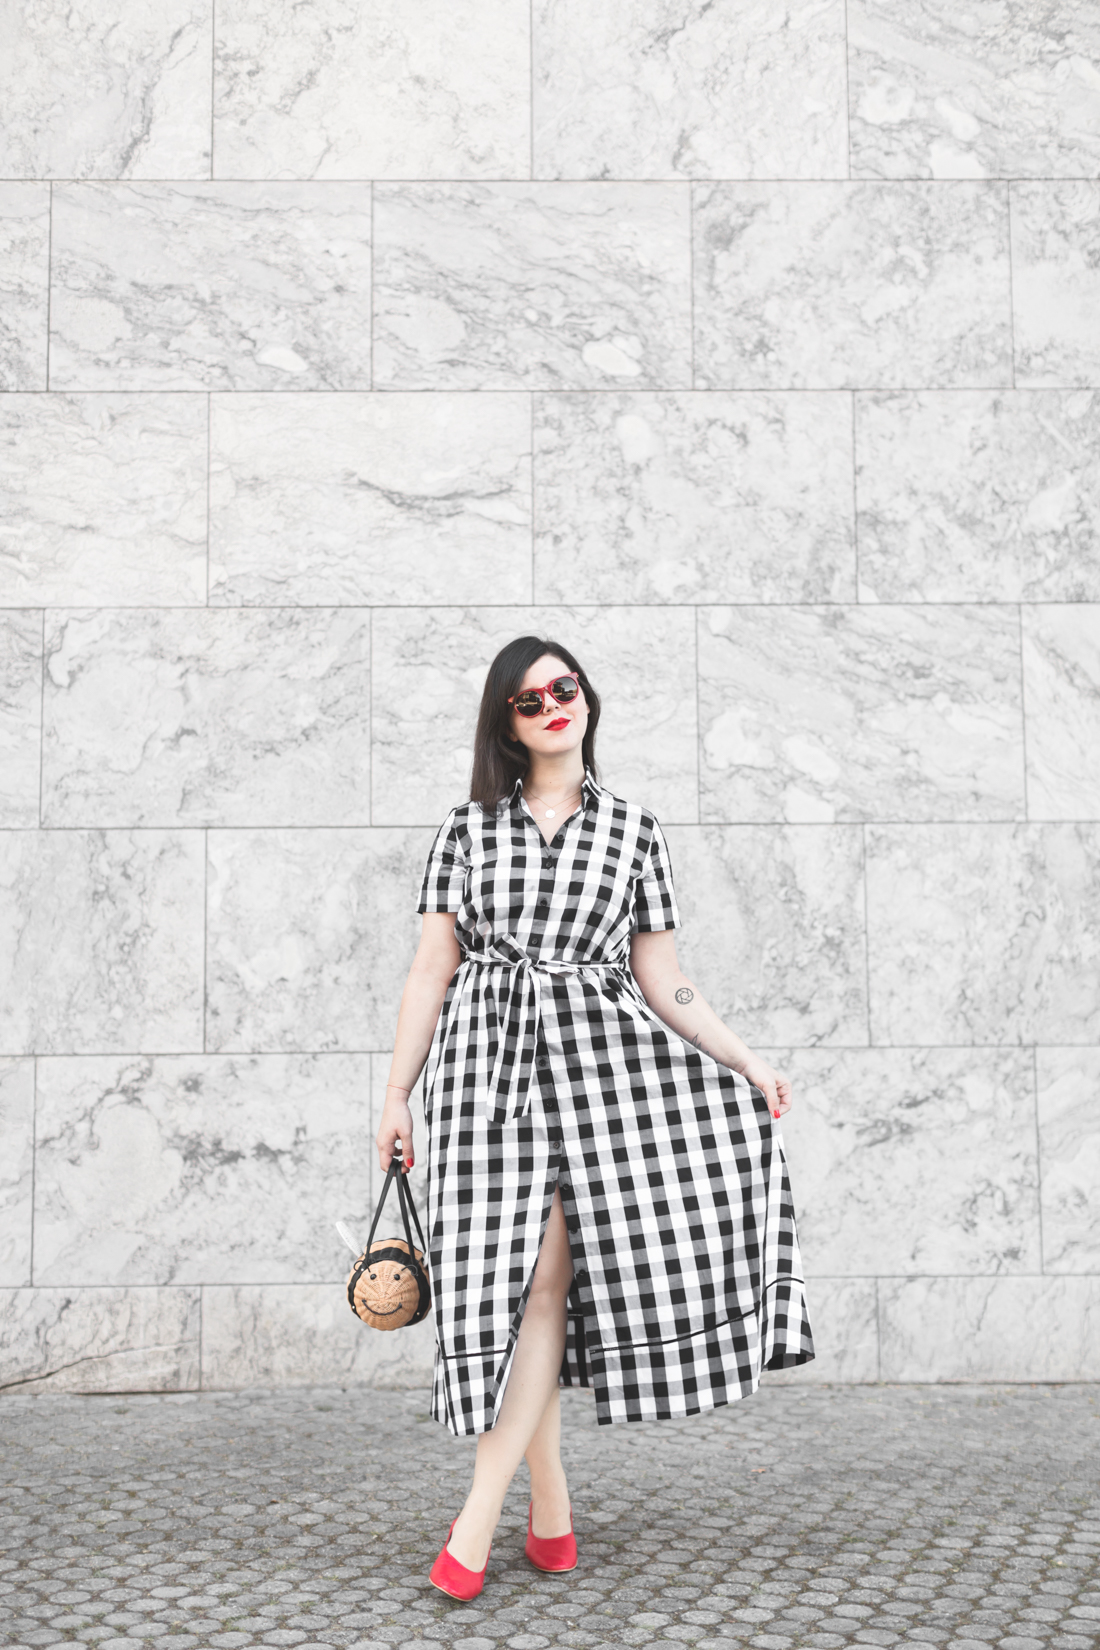 1100 gingham dress kate spade new york bumble bee bag credit Pauline paulinefashionblog.com 4 Bumble Bee